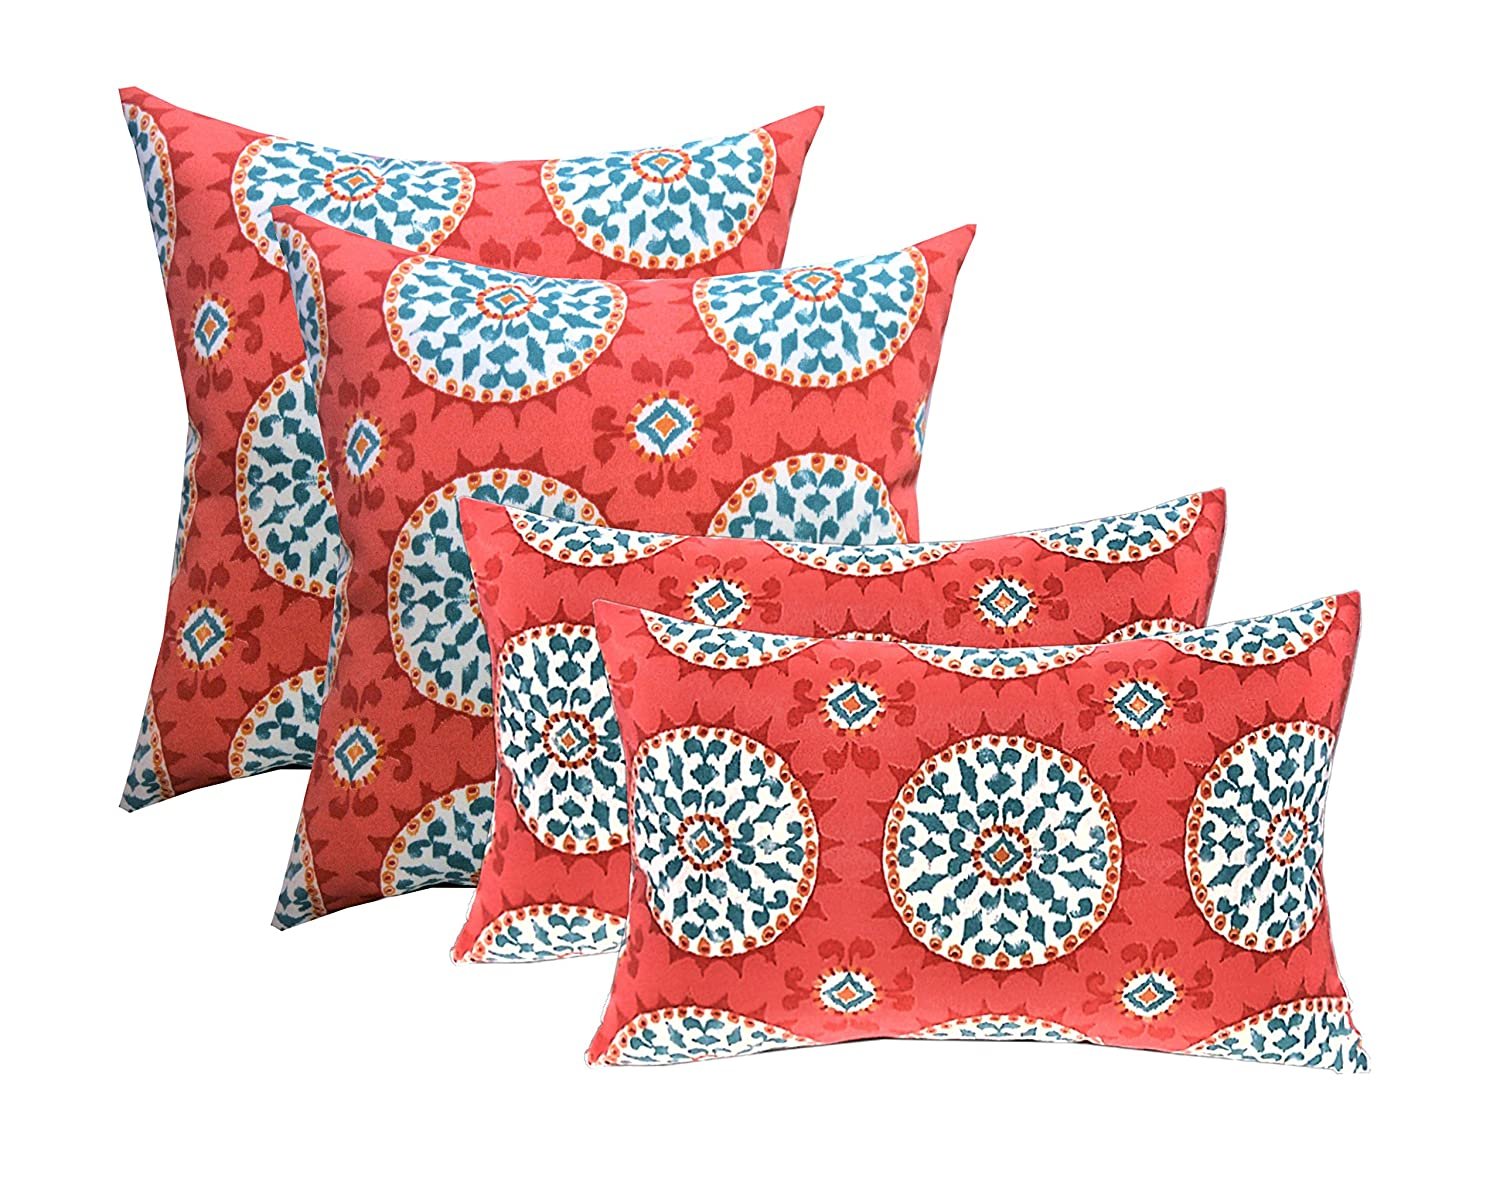 RSH DECOR Set of 4 Indoor Outdoor Pillows – 17 Square Throw Pillows Rectangle Lumbar Decorative Throw Pillows – Red, Coral, Turquoise – Watermelon Sundial